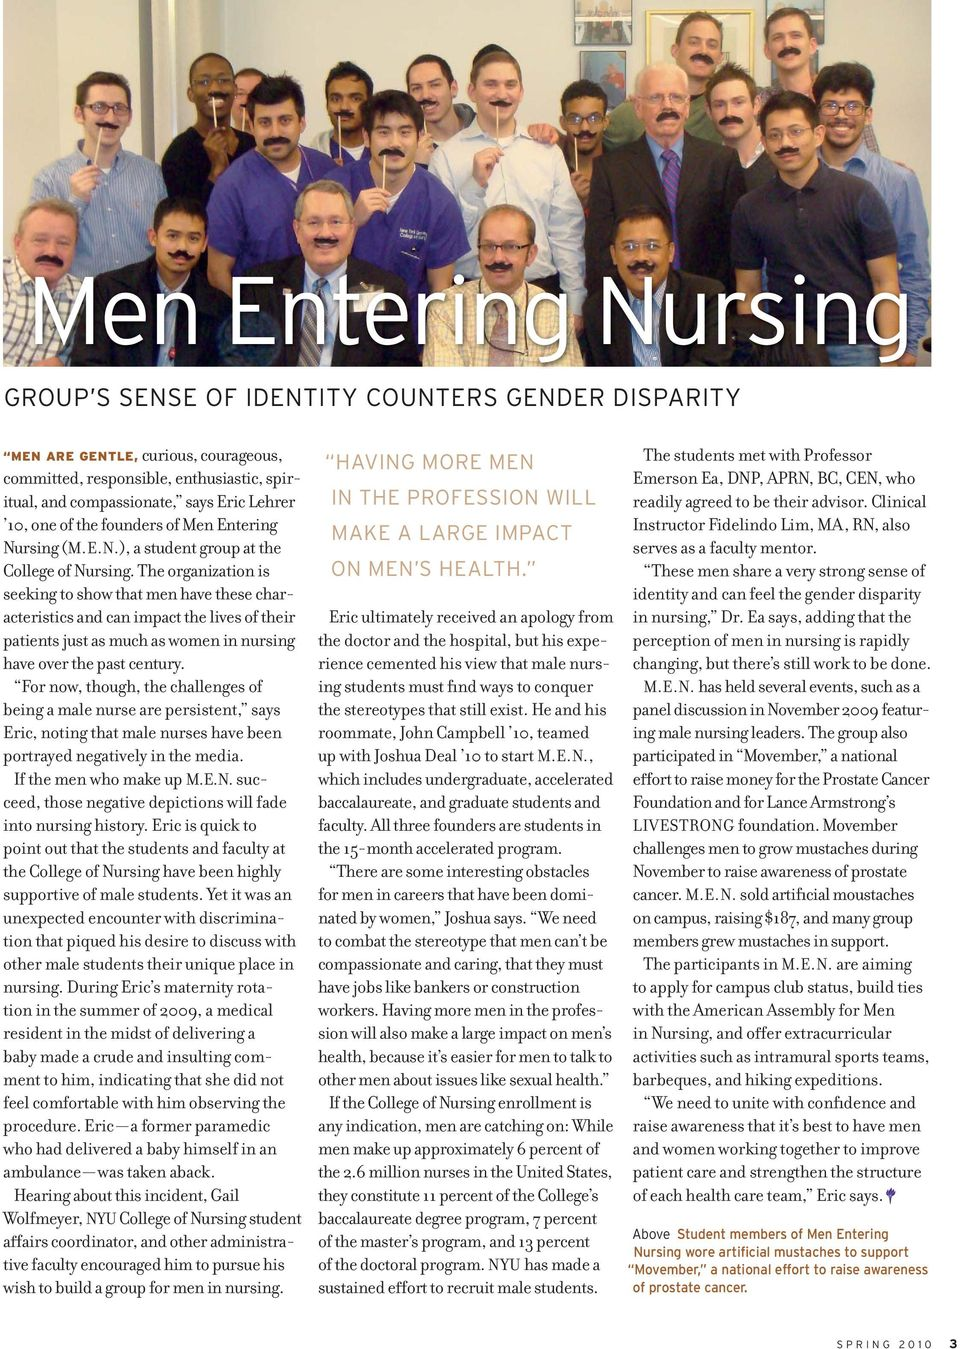 The organization is seeking to show that men have these characteristics and can impact the lives of their patients just as much as women in nursing have over the past century.